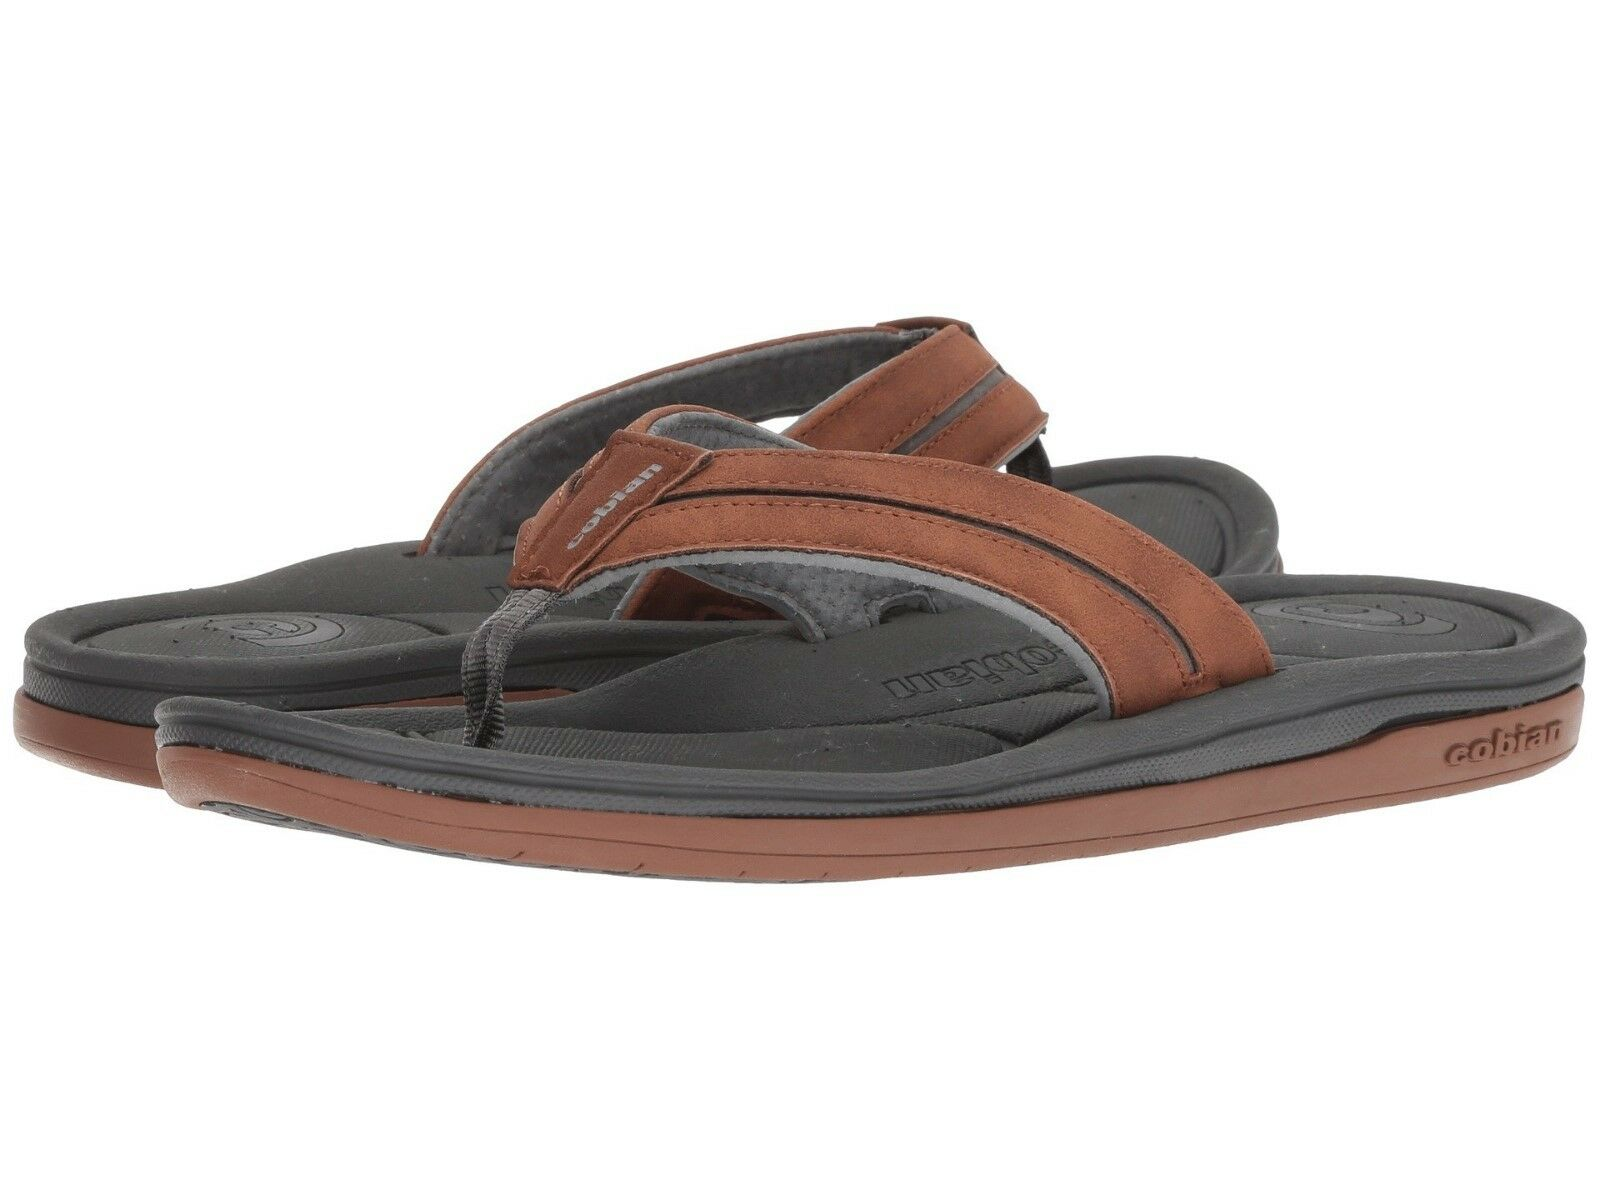 NEW MEN COBIAN SANDALS TOFINO BOLSTER CHESTNUT LASTING COMFORT ORIGINAL 18-210